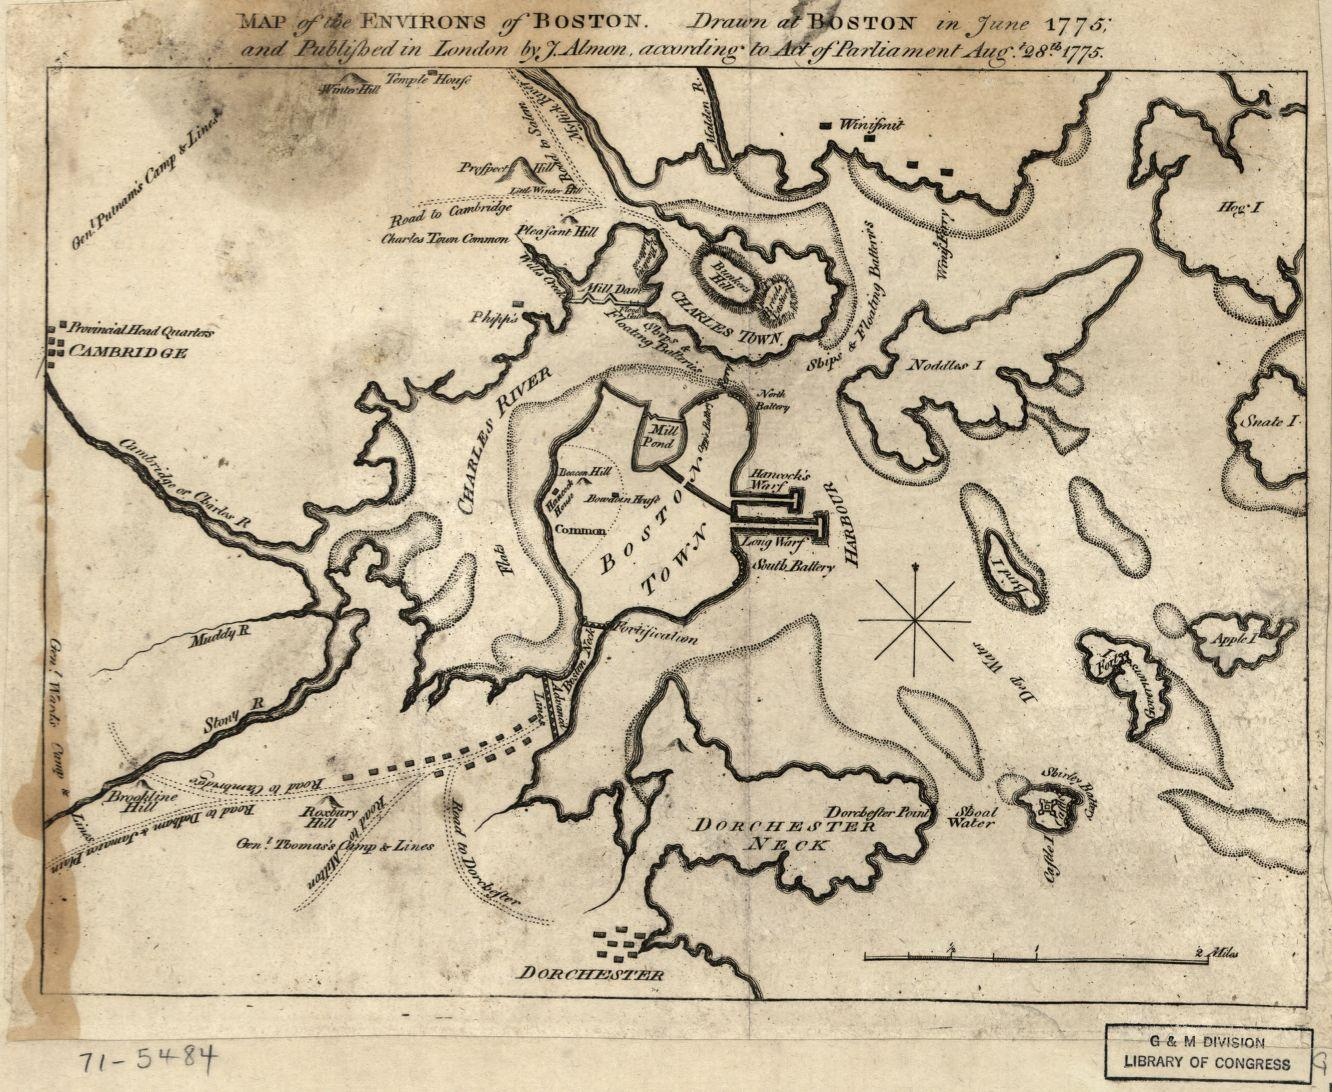 This map, showing camps and fortifications, was drawn during the Siege of Boston. Published by J. Almon, 1775. Library of Congress call number G3764.B6S3 1775 .A5.